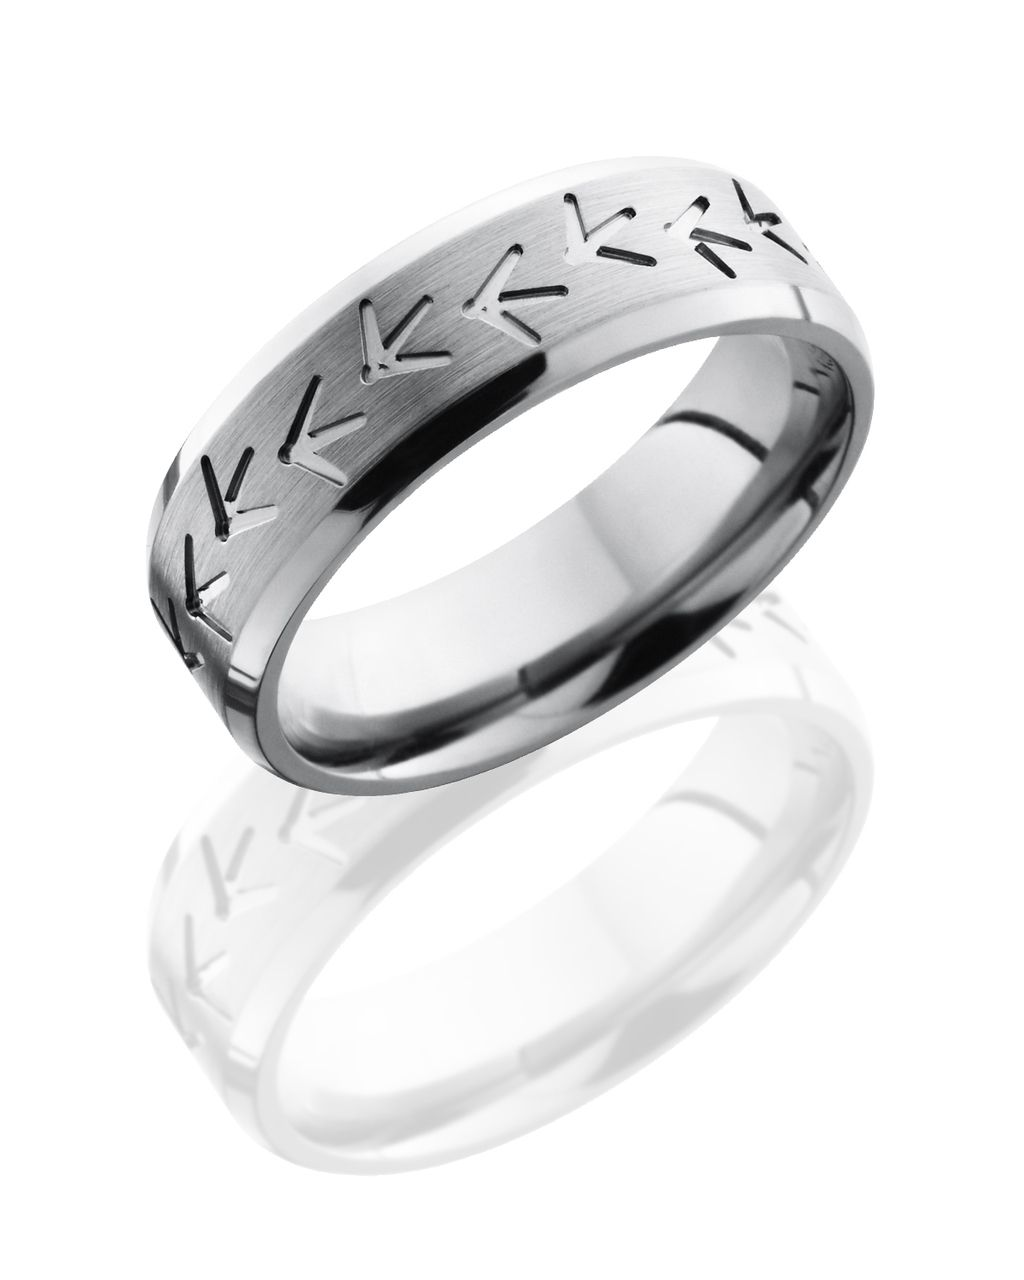 Turkey Track Wedding Band In Titanium  Camoeverafter